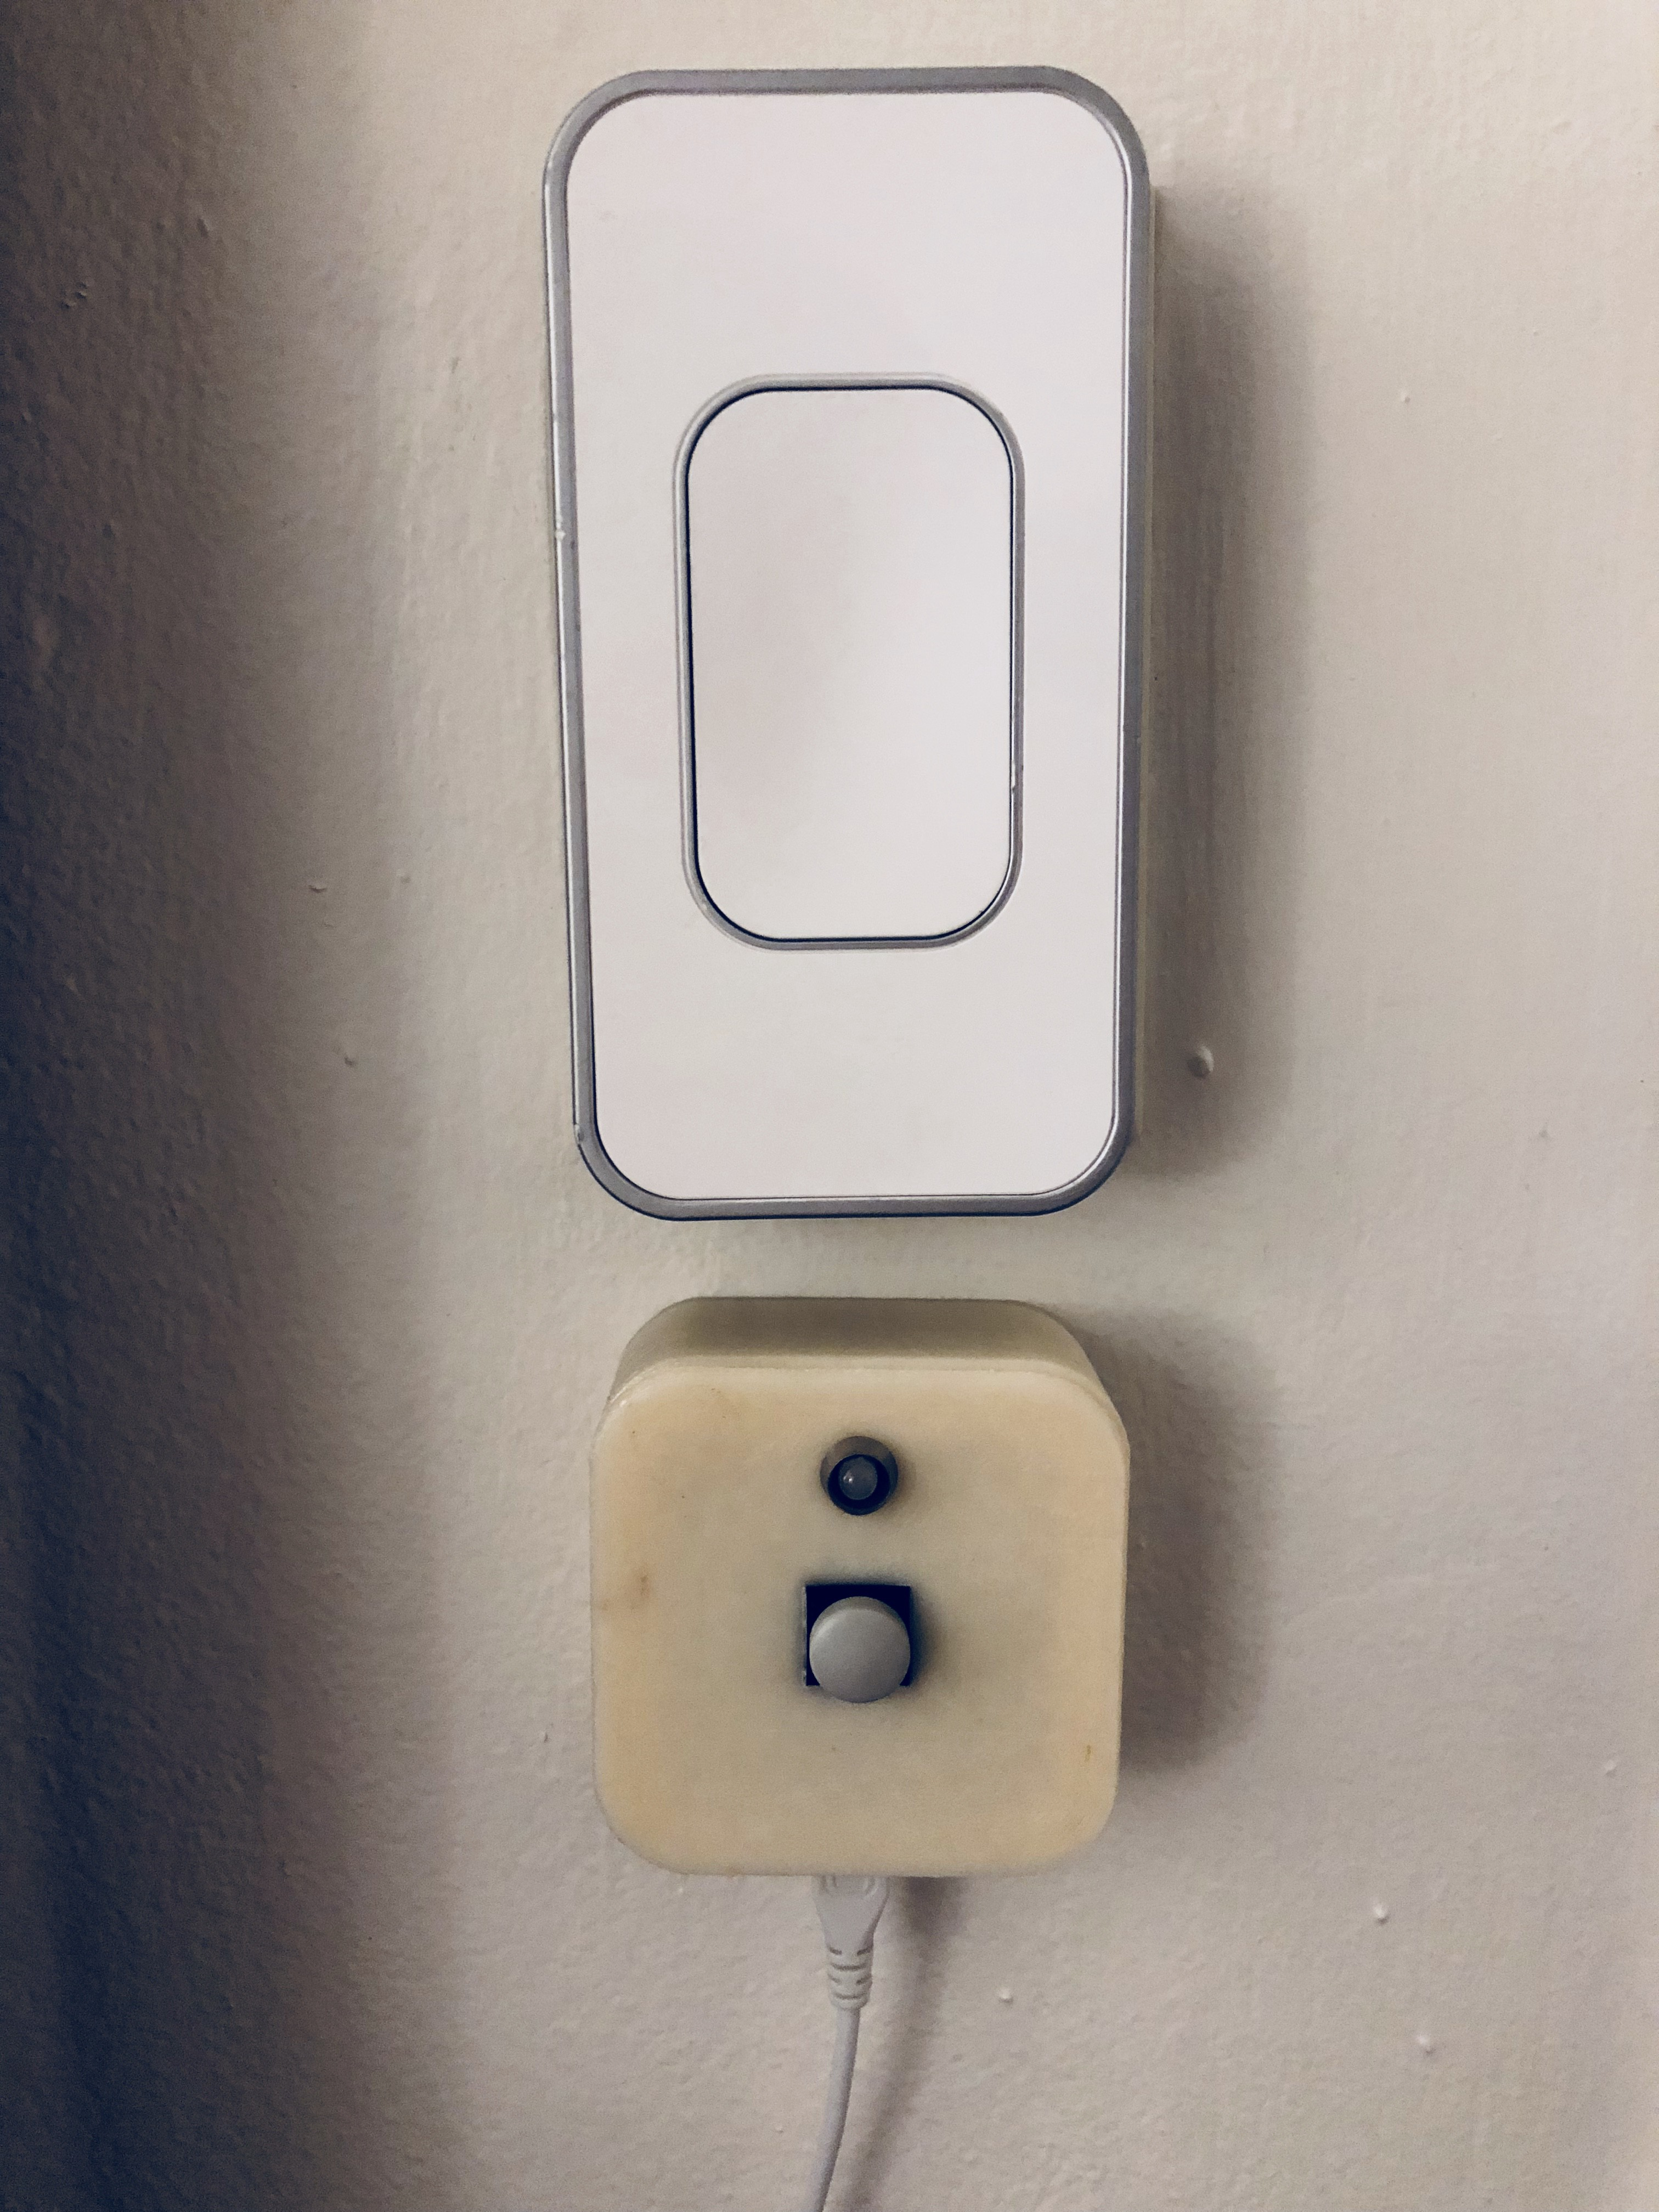 Philips Hue Remote Using Esp8266 My Life As A Tinkerer